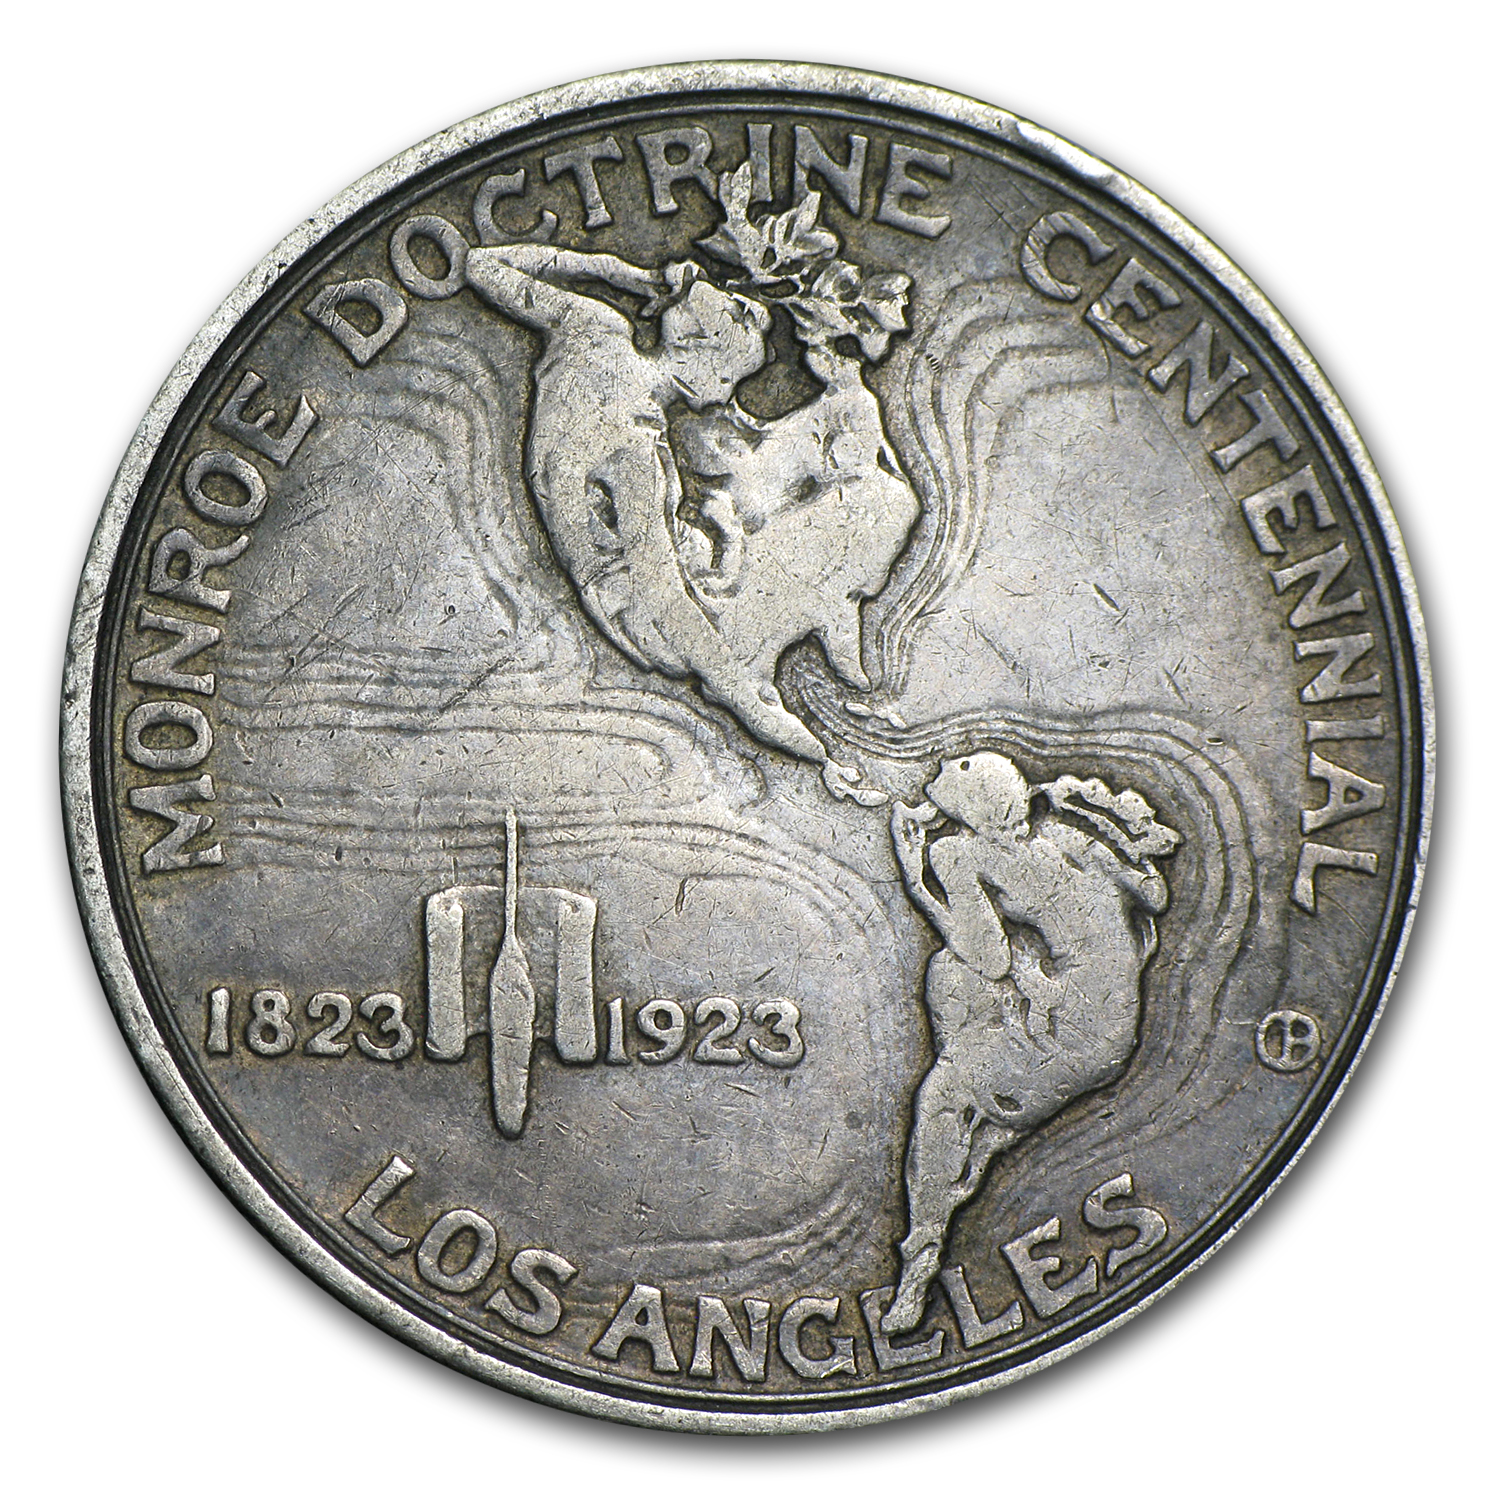 1923-S Monroe Doctrine - Average Circulated